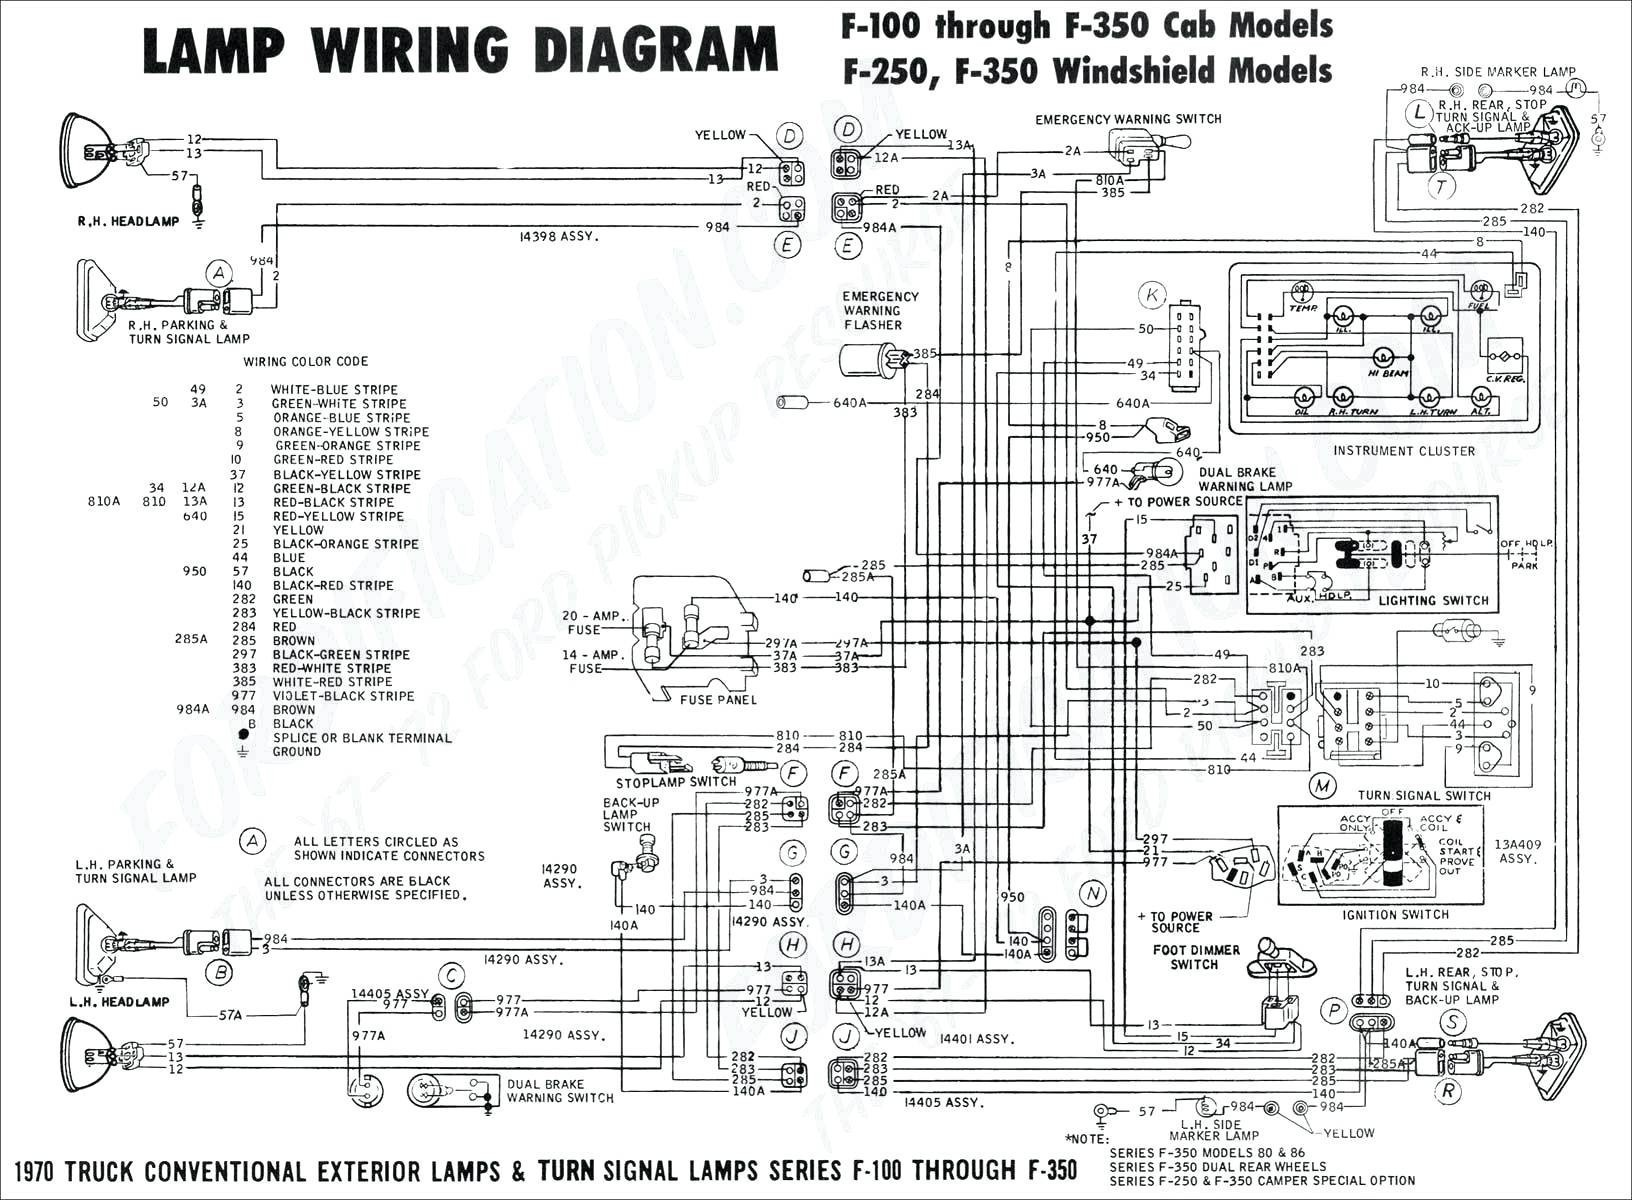 2003 Oldsmobile Alero Engine Diagram 2000 Cutlass Supreme 1977 Wiring Cutl Worksheet And Of